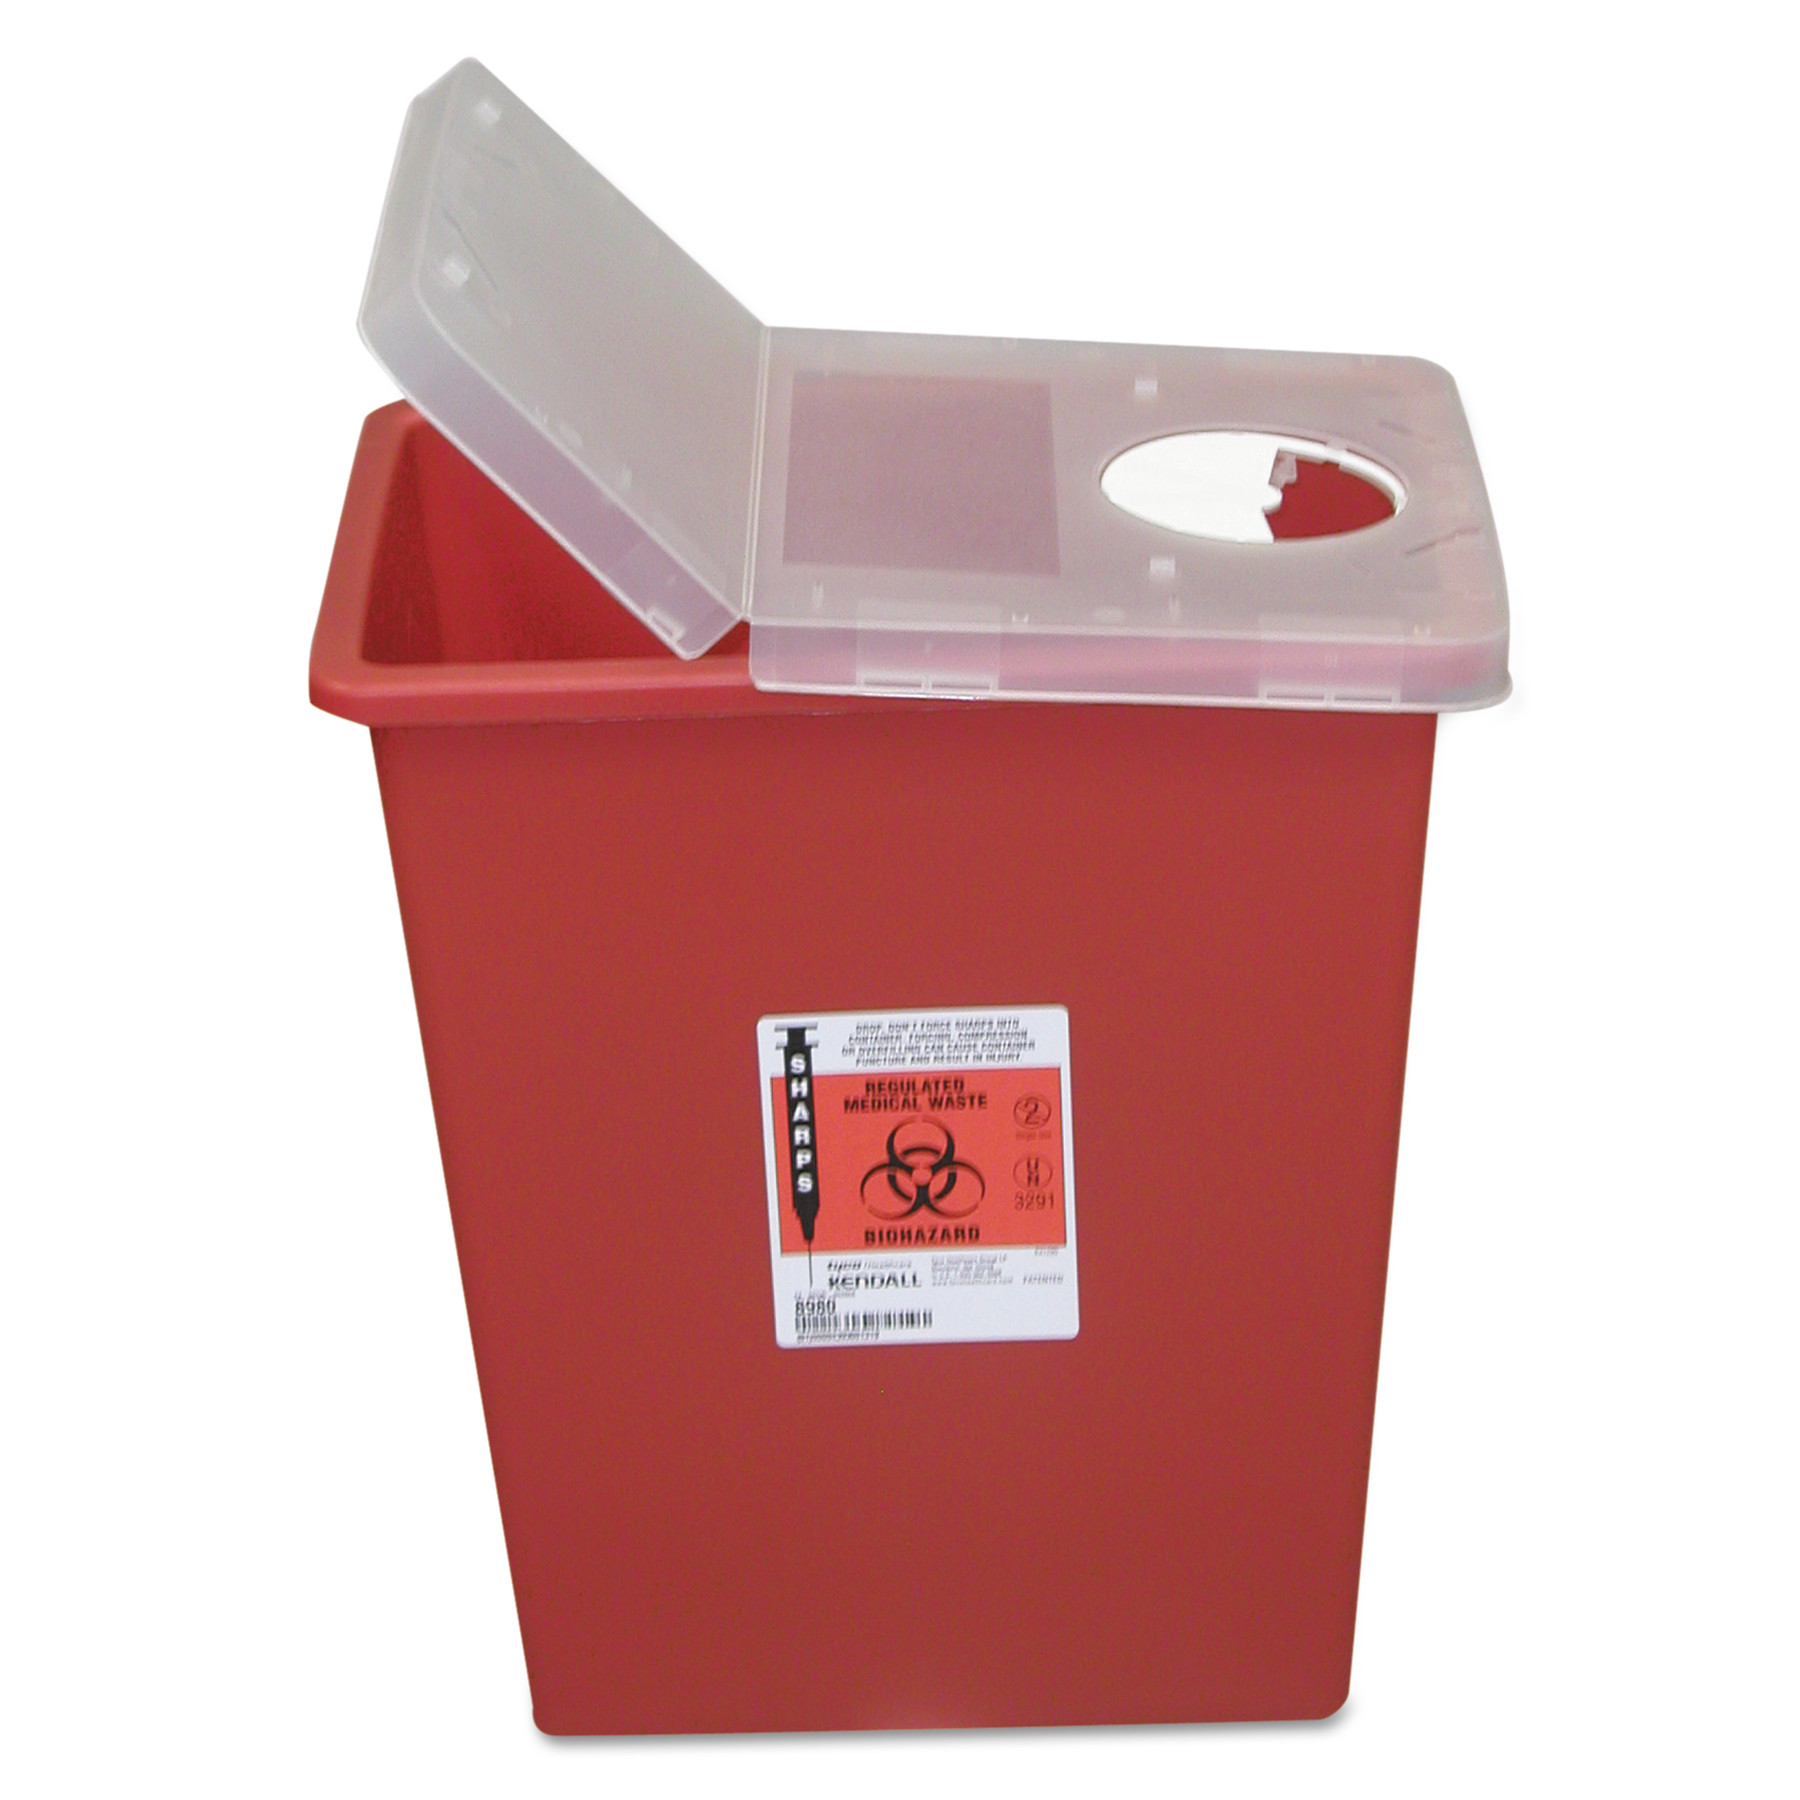 Covidien Sharps Containers, Polypropylene, 8 gal, 15 1/2 x 11 x 17 3/4, Red